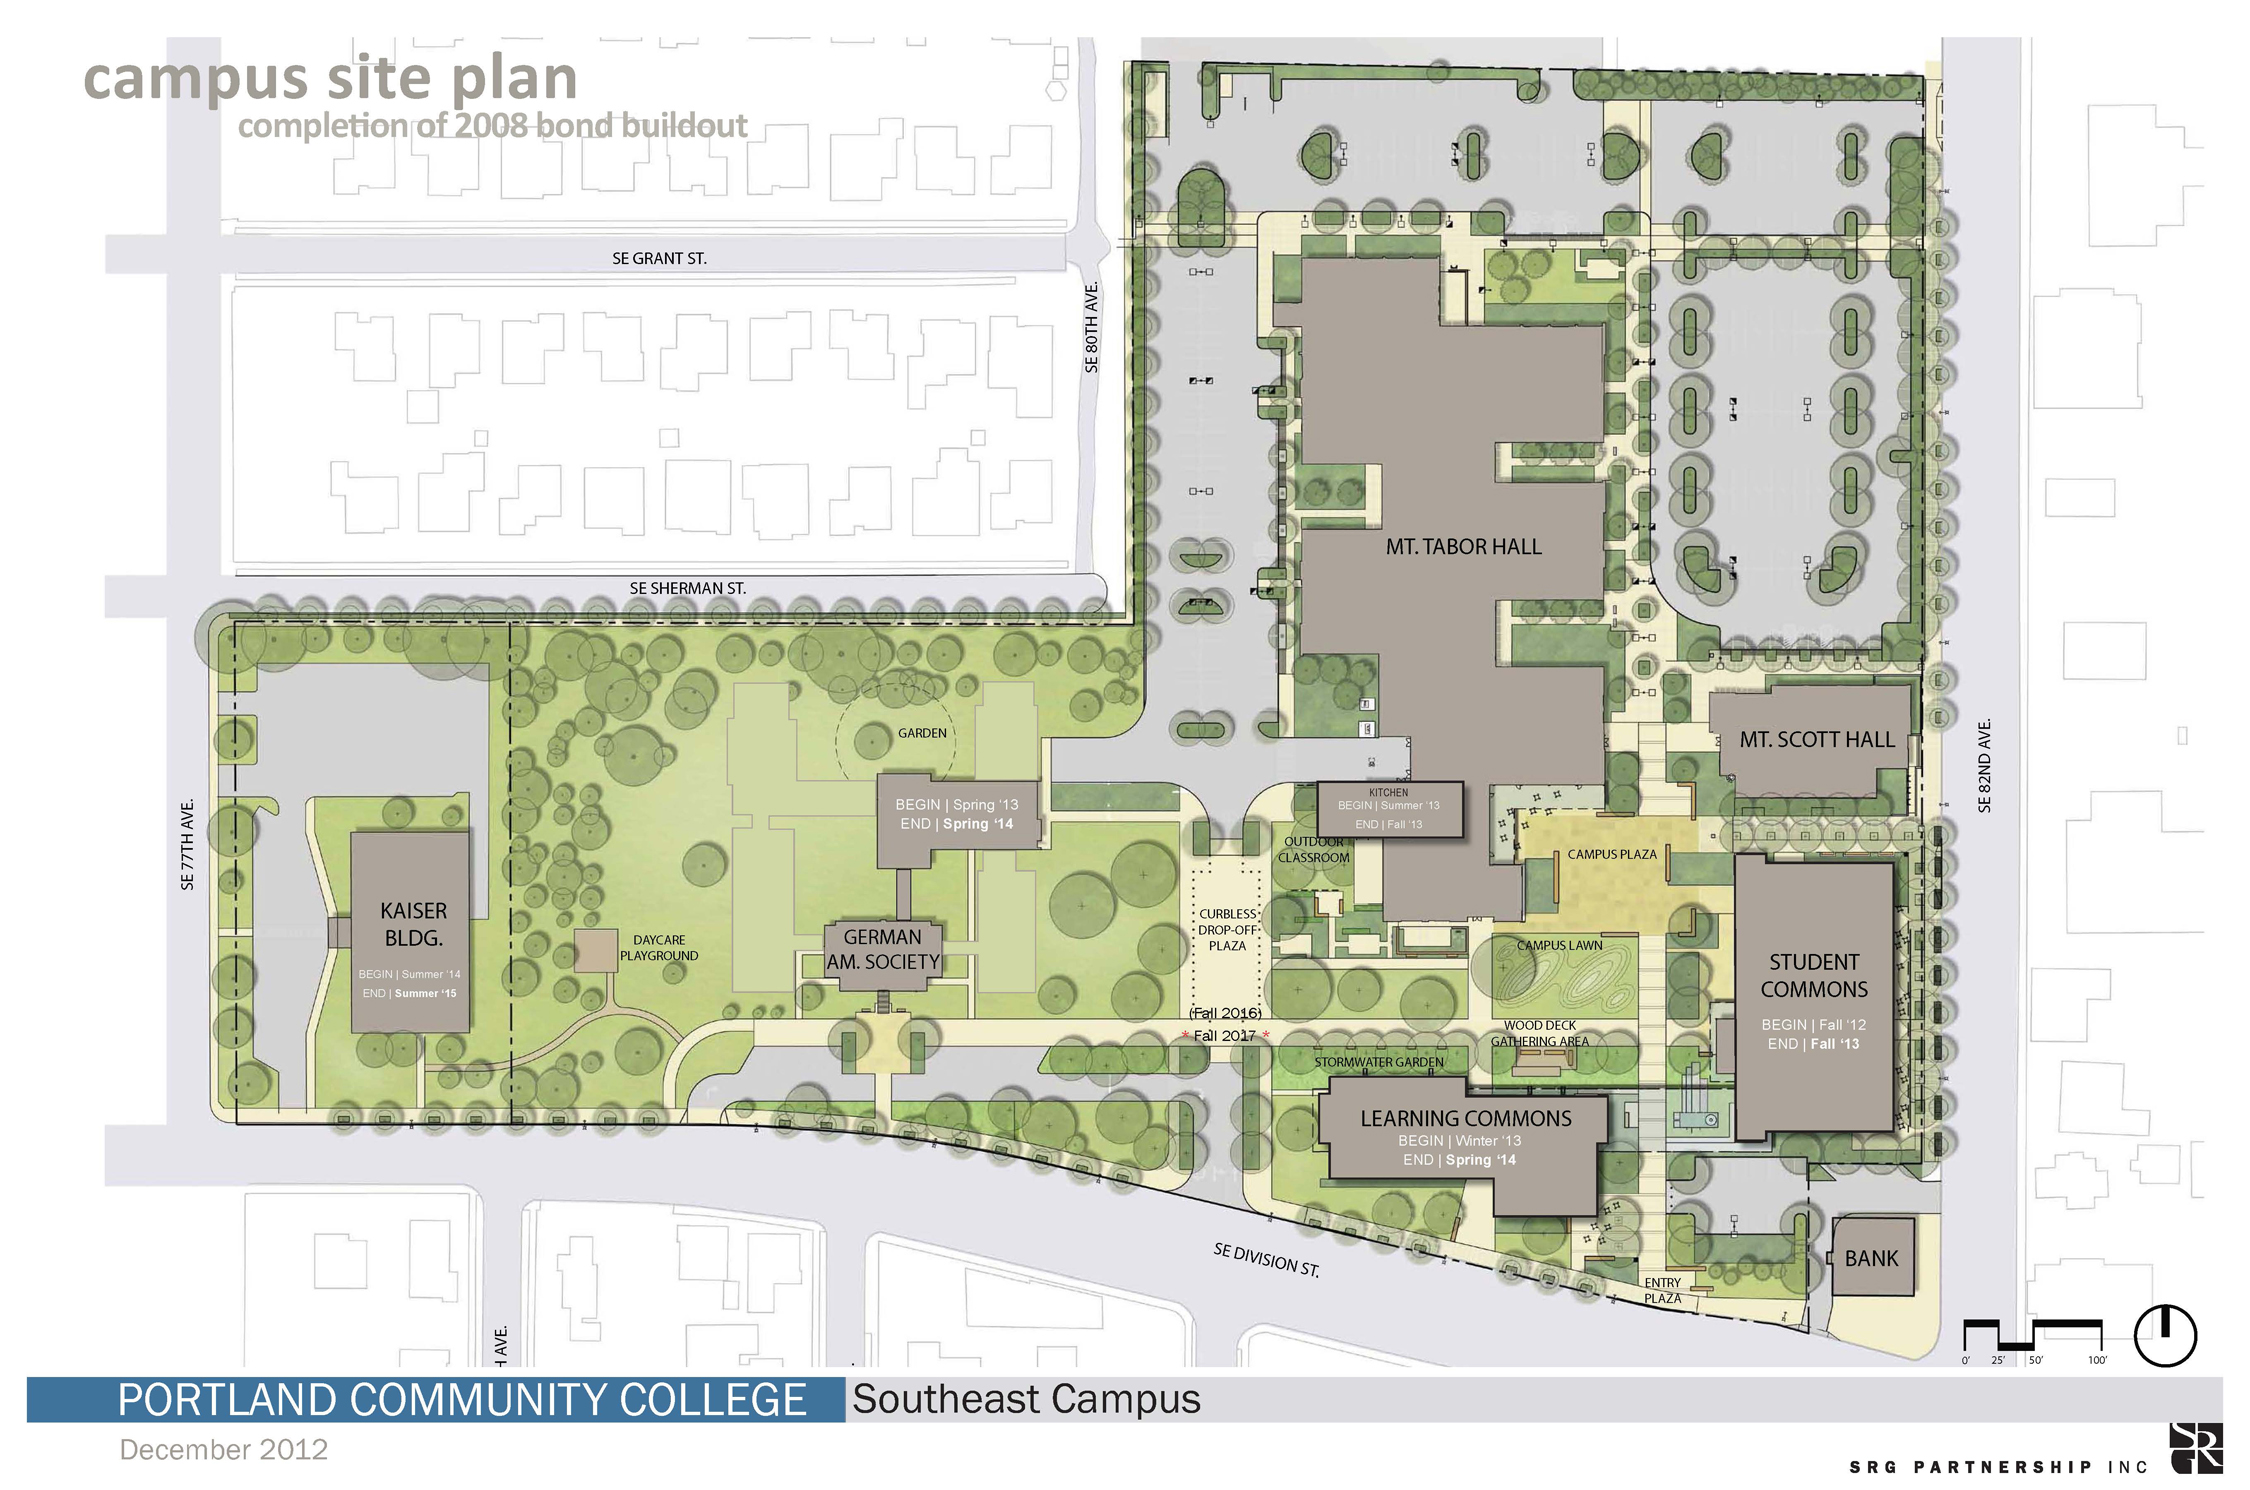 12.12.06 – SE Campus Schedule Site Plan – smaller image size for